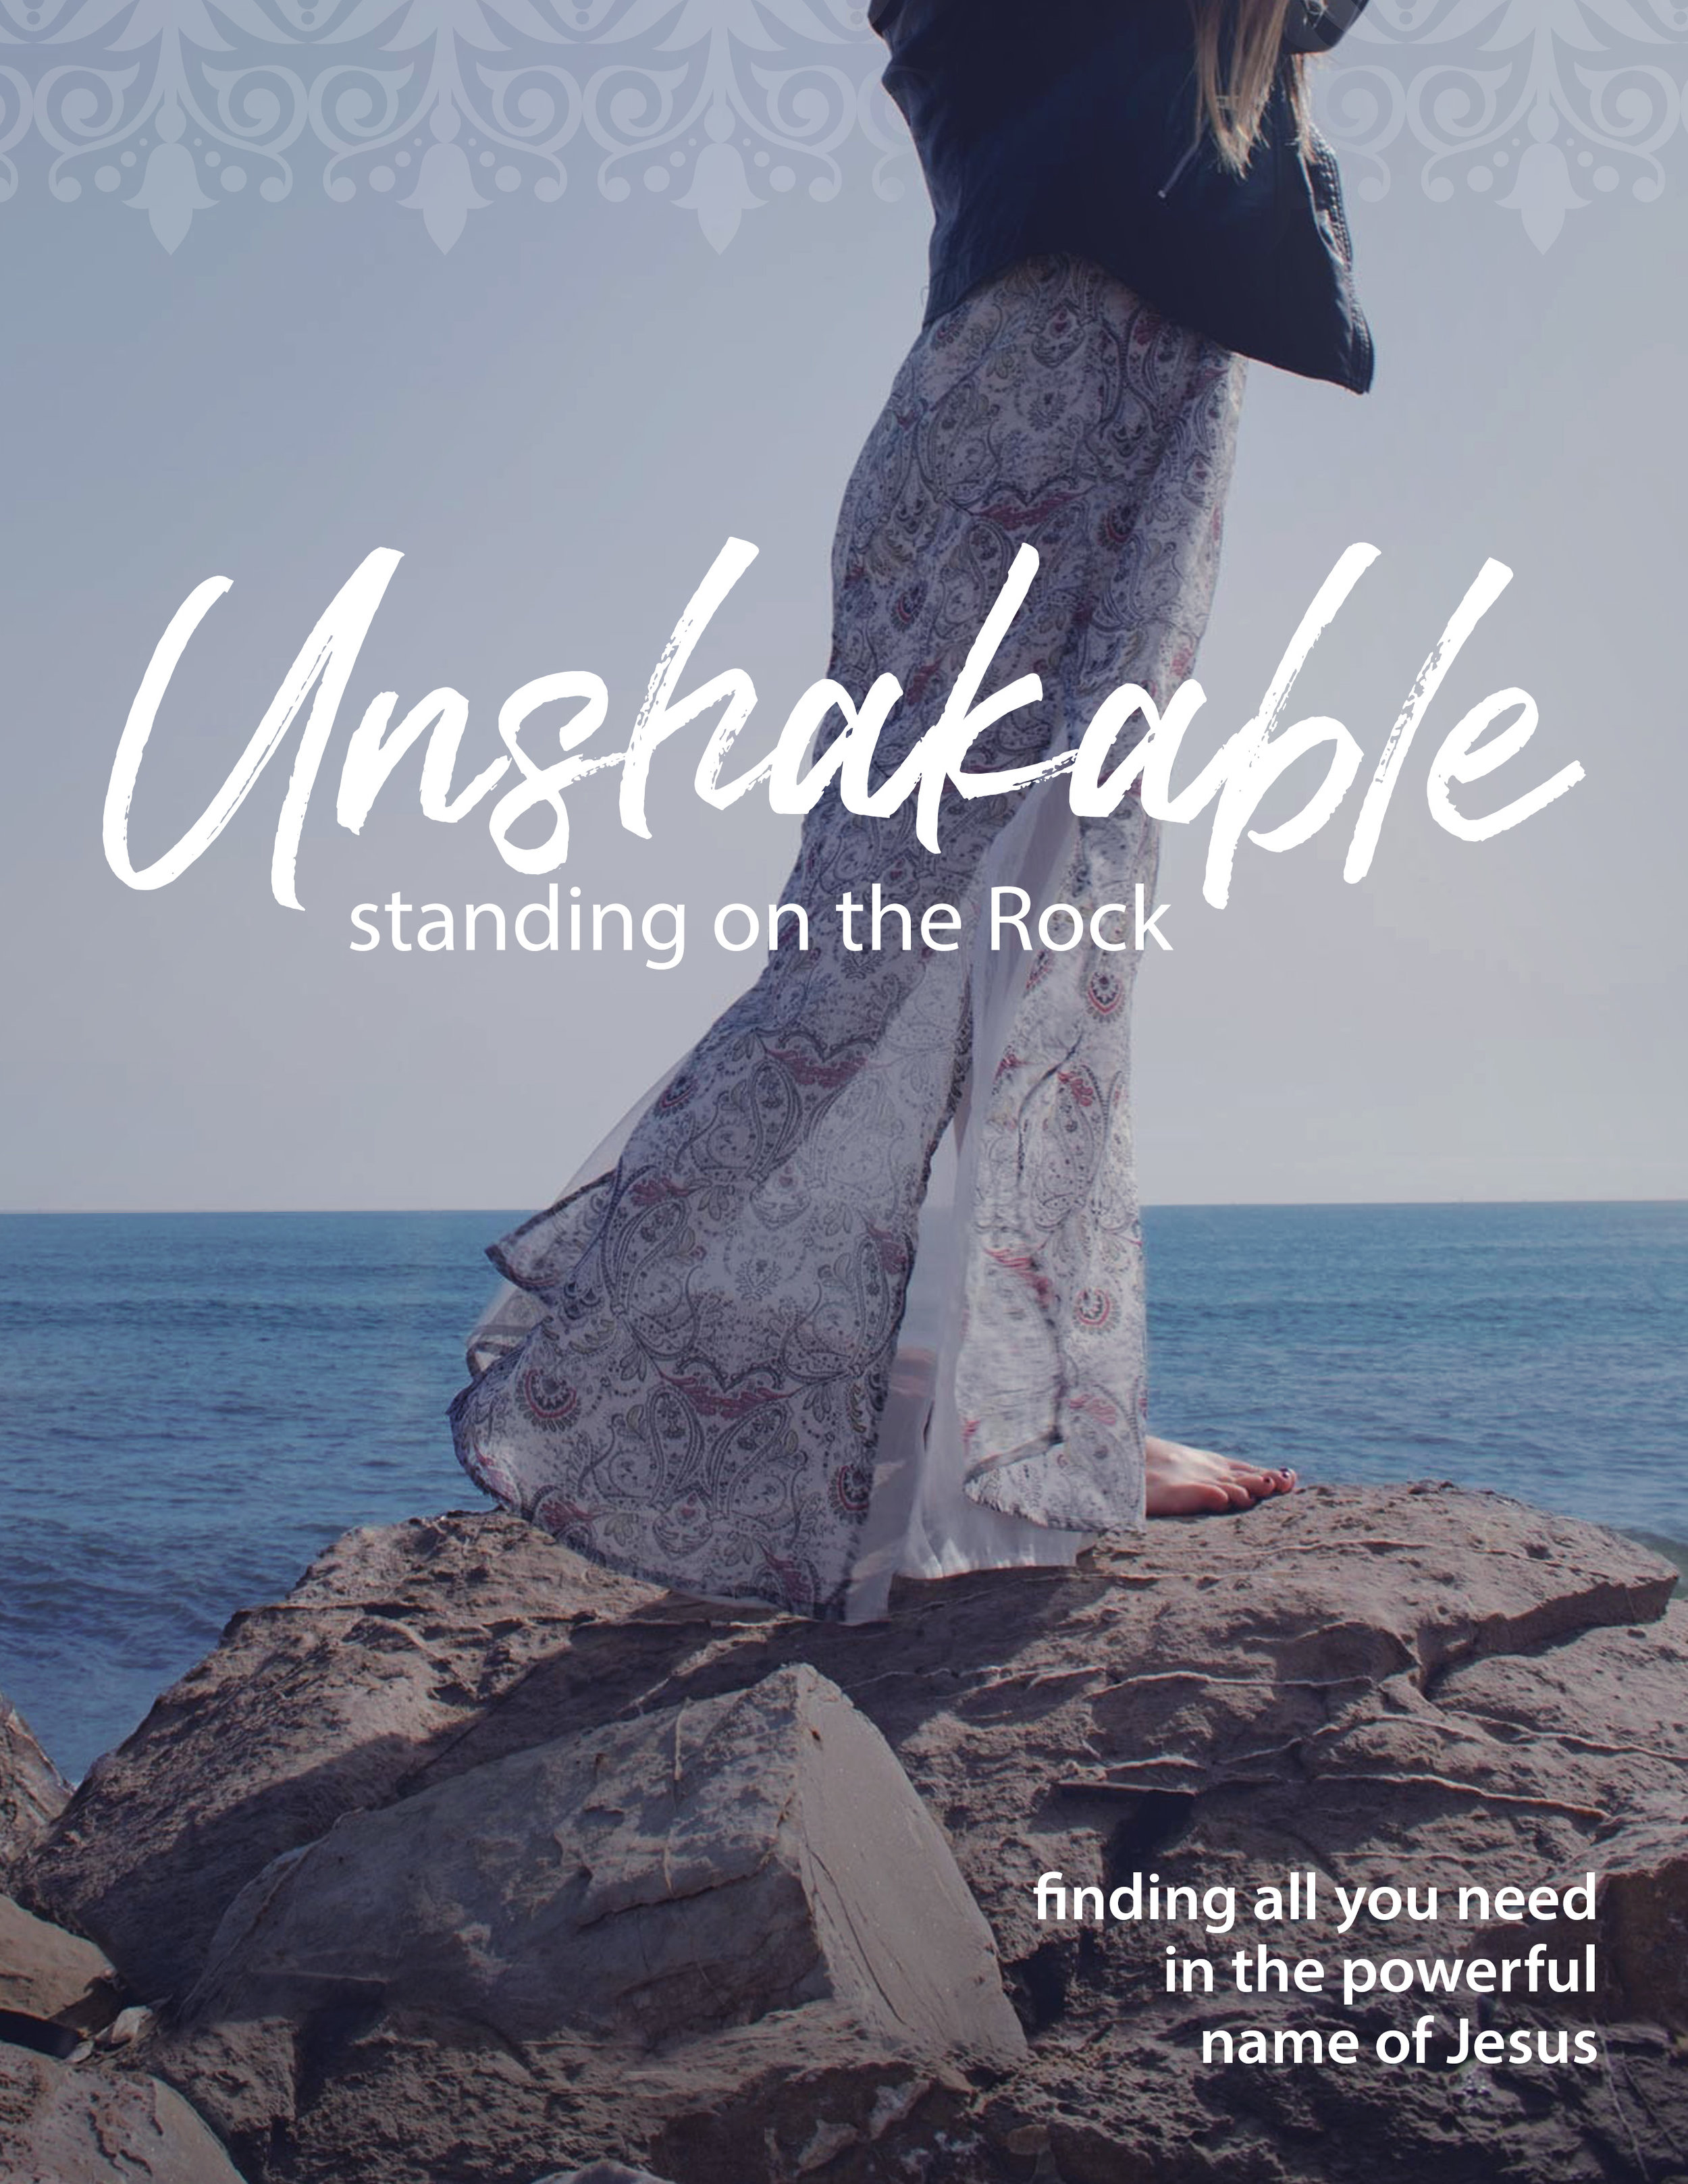 Unshakable, - standing on the RockGod is intimately acquainted with each and every detail of your life—past, present, and future. He knows you will be shaken in some way at some point and wants to prepare you for whatever lies ahead. He wants to meet you where you are right now. God wants you to be Unshakable, standing firm upon the Rock.· Have you been shaken?· Are you being shaken now?· What does it mean to be unshakable, to stand firm on the Rock?· What would it be like to lead an unshakable life?Explore what it means to be Unshakable and to find all you need in the powerful Name of Jesus. Join us for this 10 week study:Thursdays beginning February 7, 2019The Chapel Grayslake9-11am and 6:30-8:30 pm.Click here for registration details.